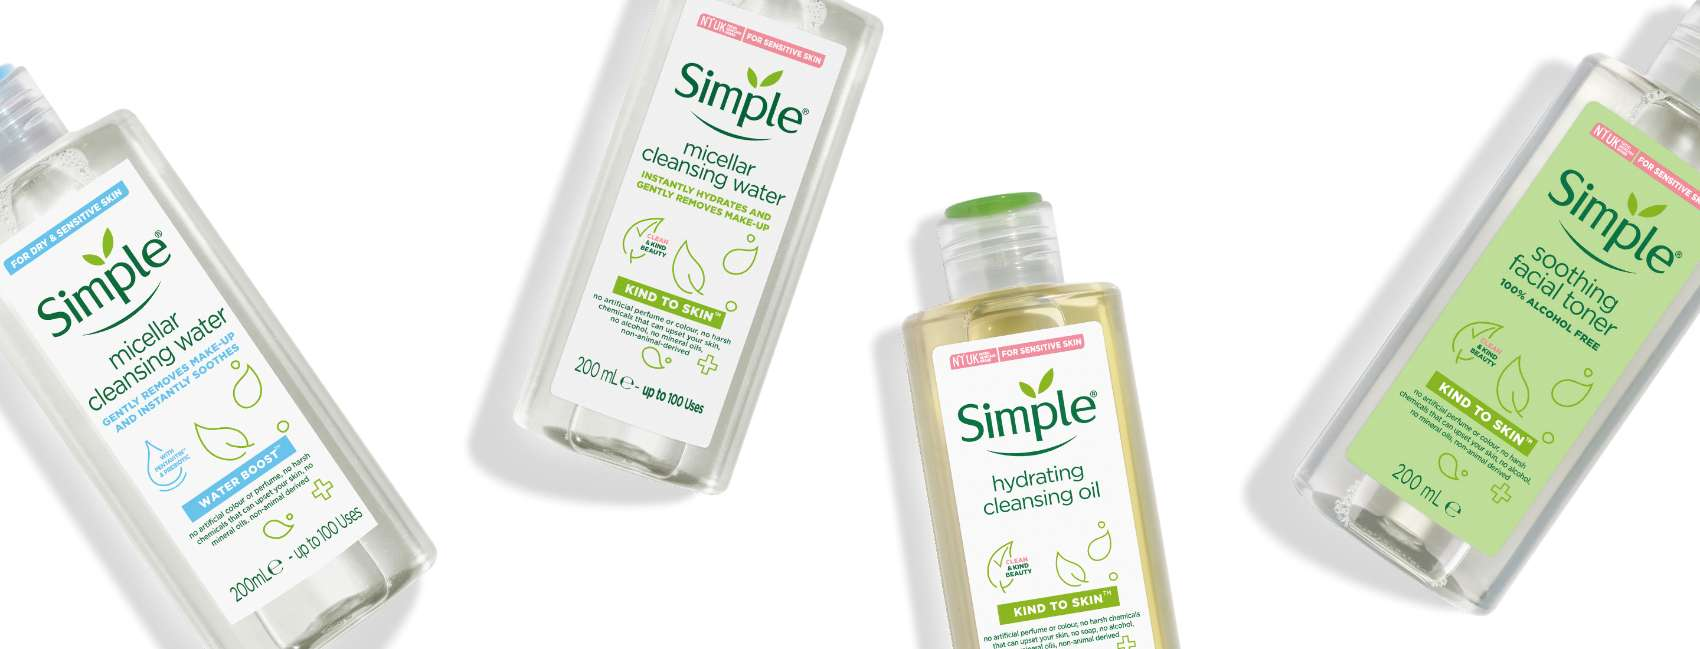 Simple face cleansers and toners